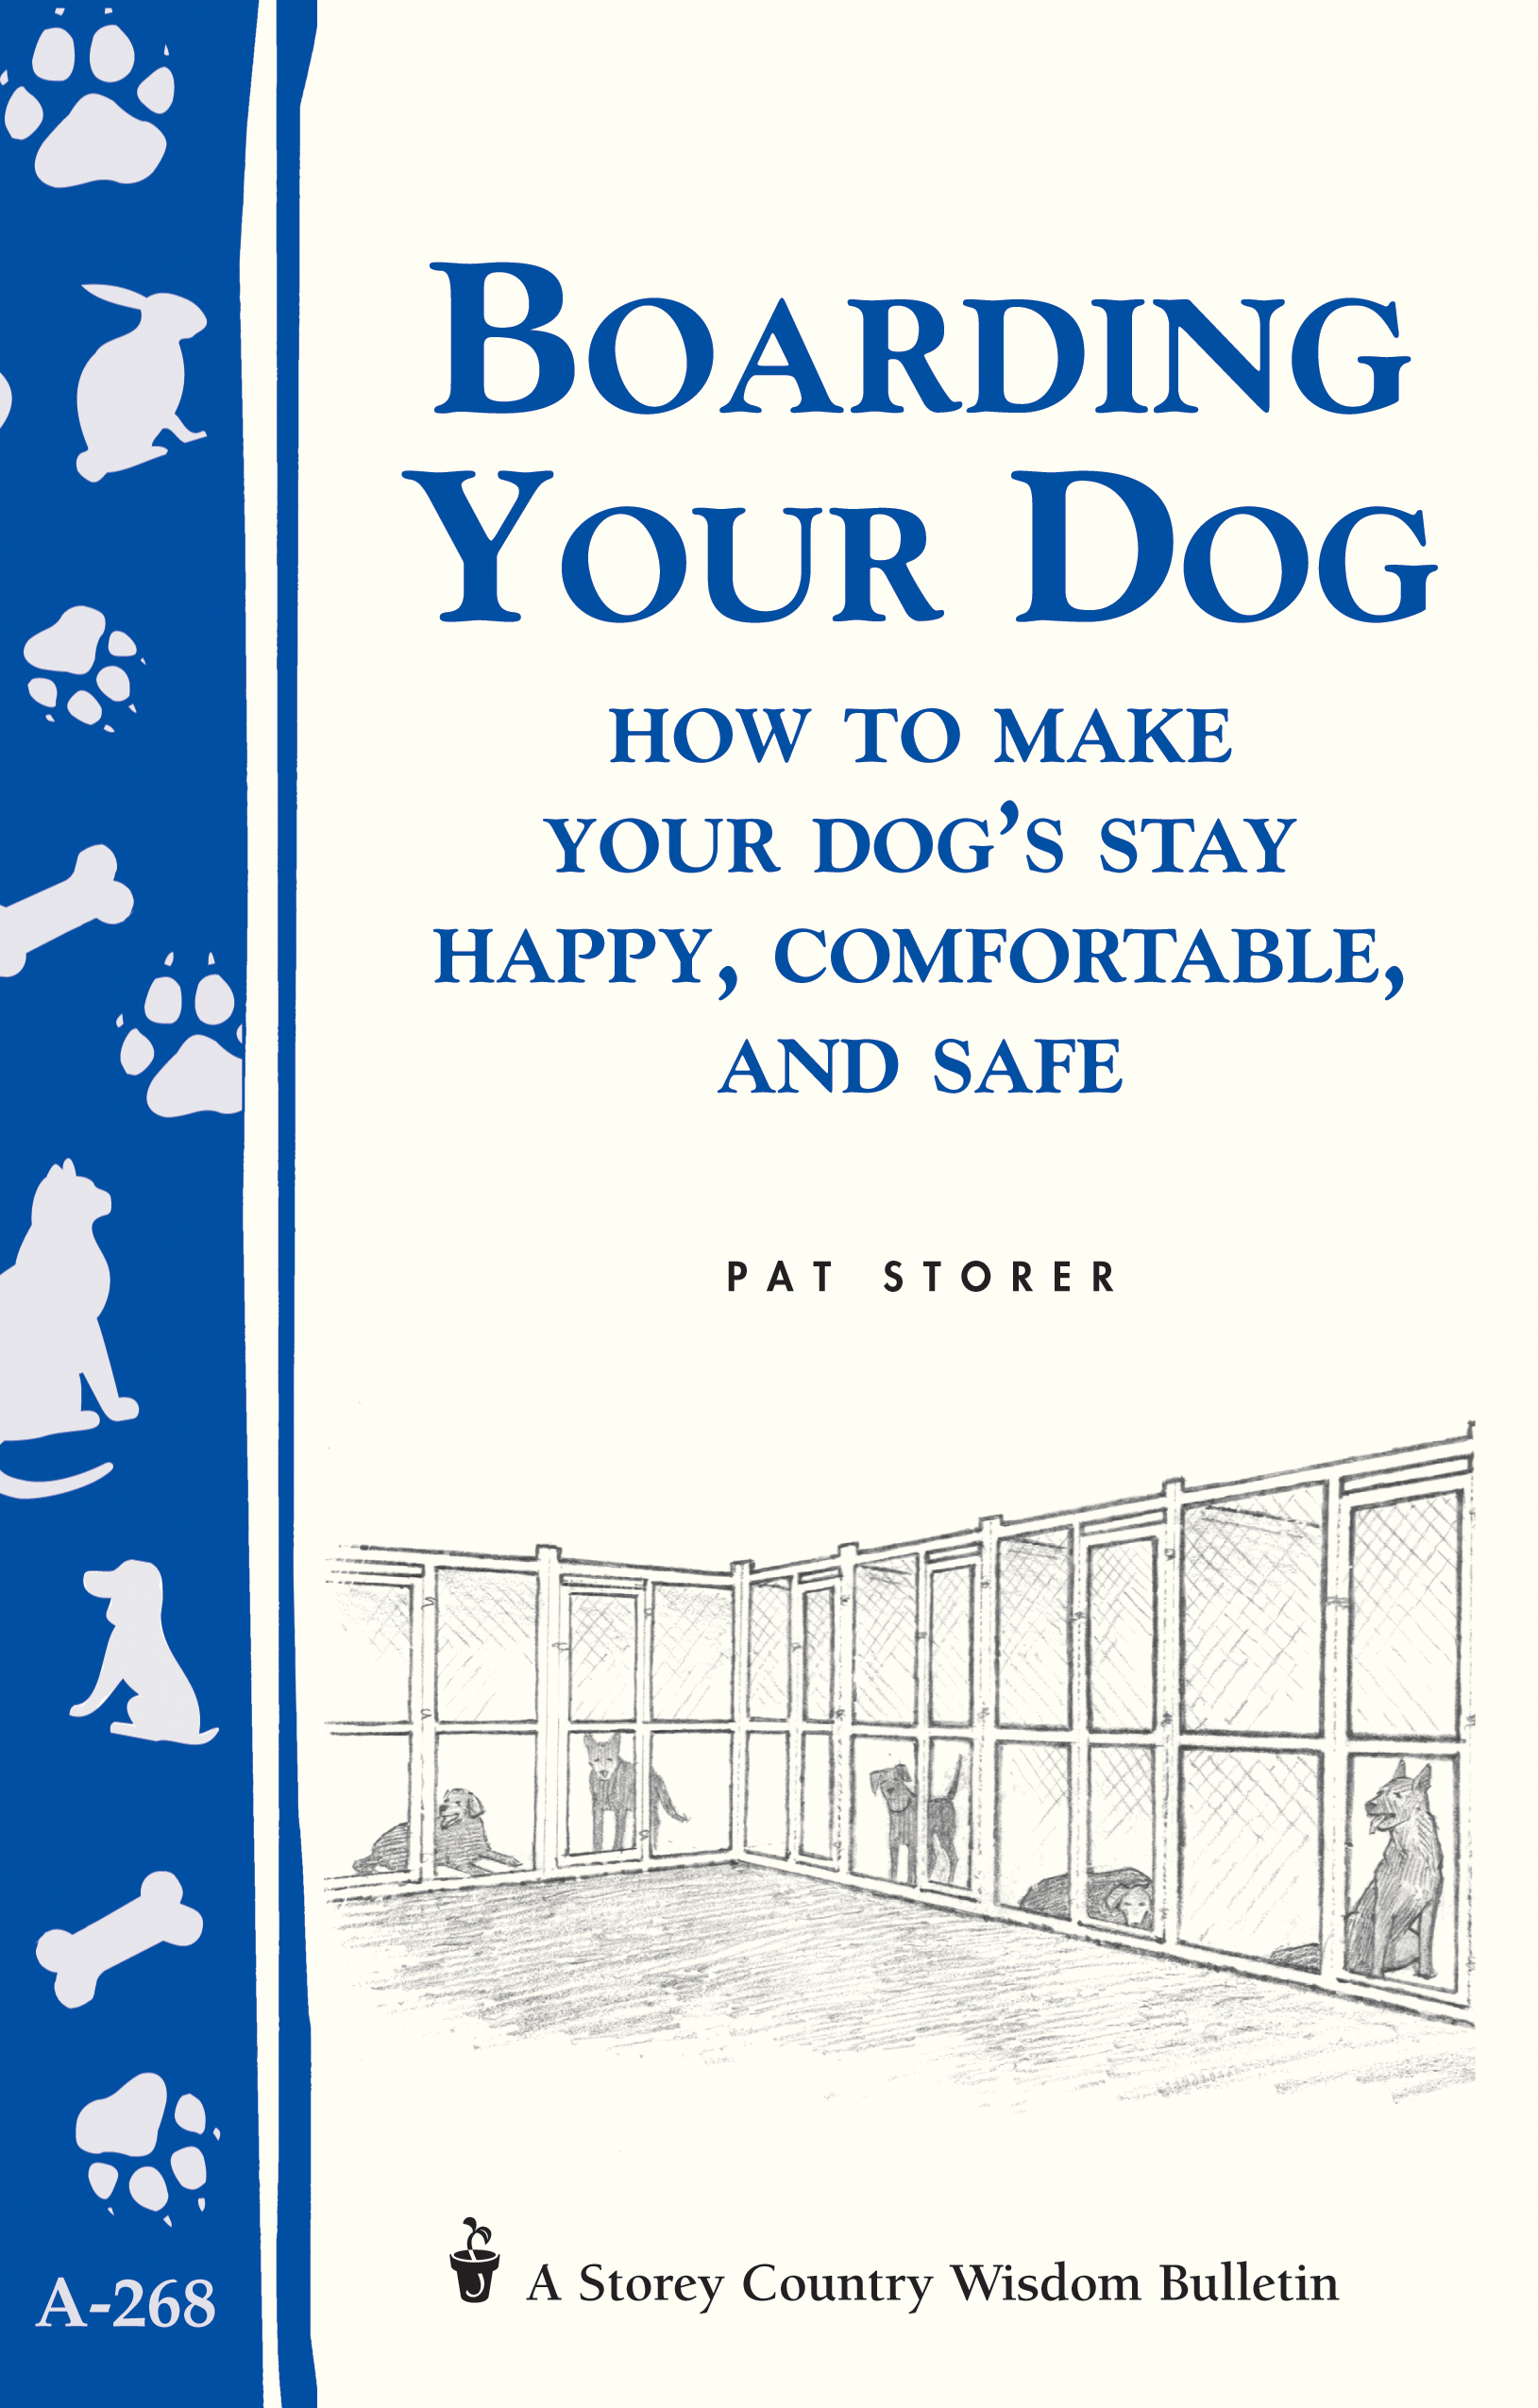 Boarding Your Dog: How to Make Your Dog's Stay Happy, Comfortable, and Safe Storey's Country Wisdom Bulletin A-268 - Pat Storer